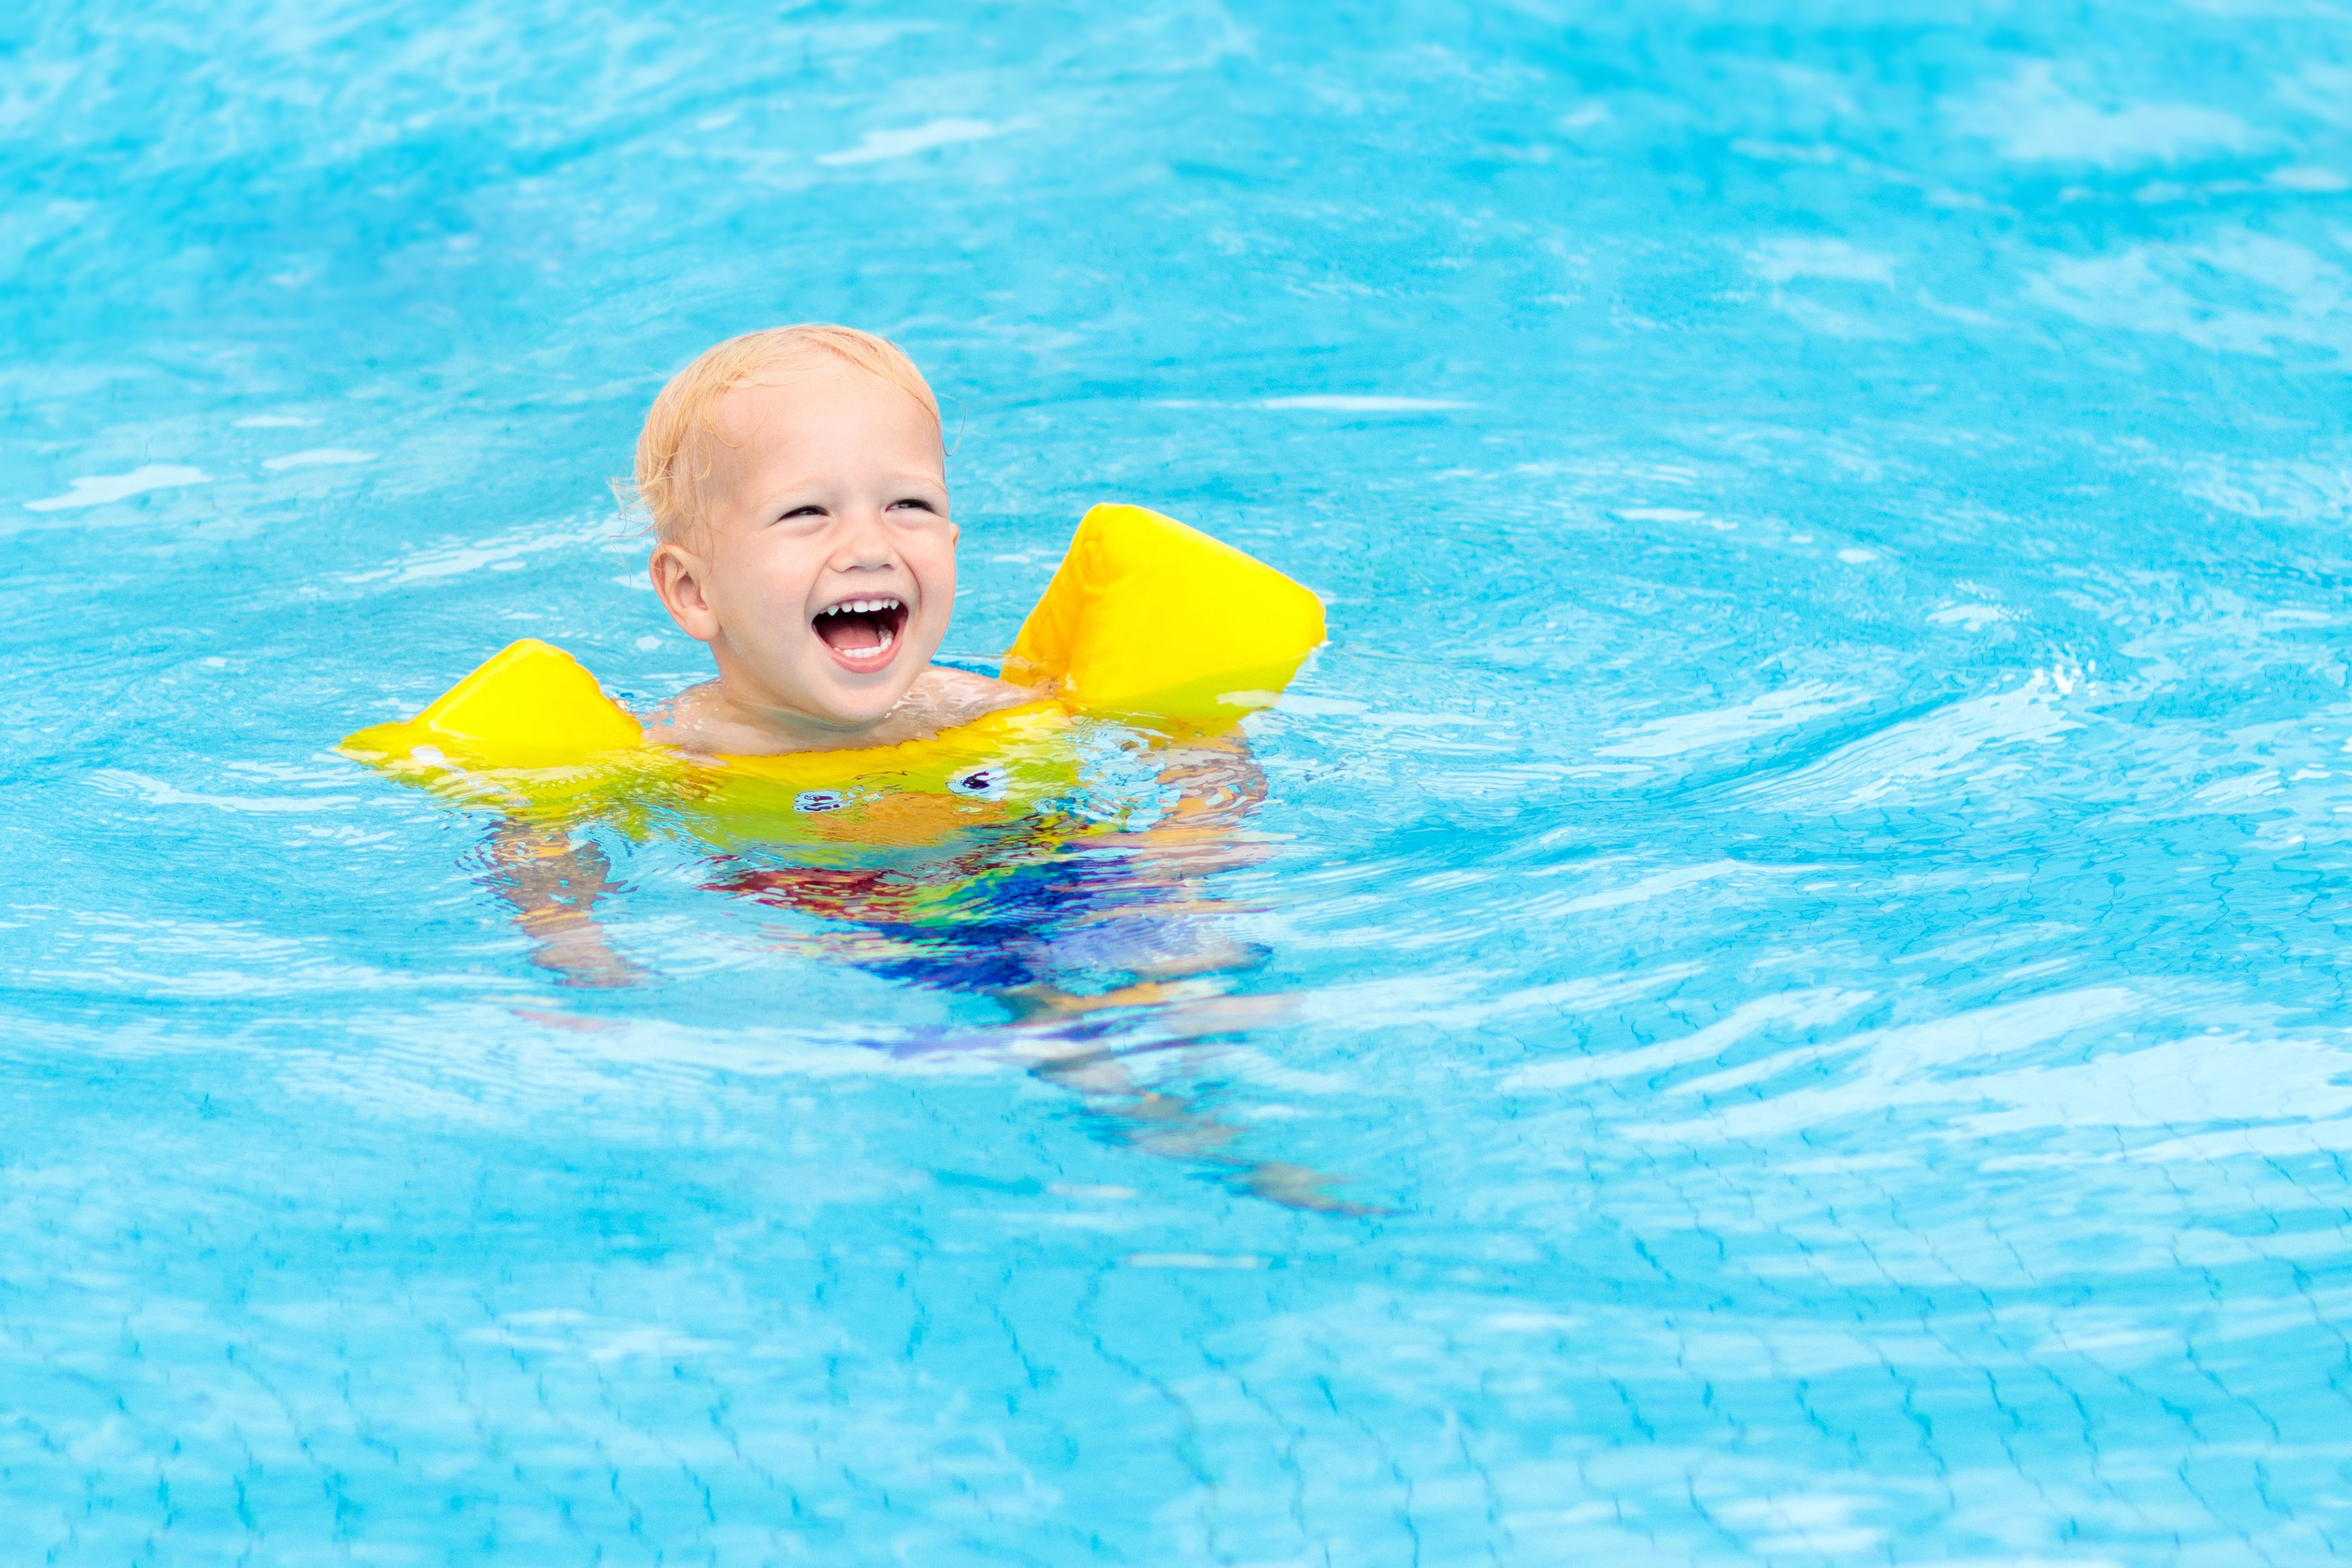 New safety standards for private swimming pools and spas